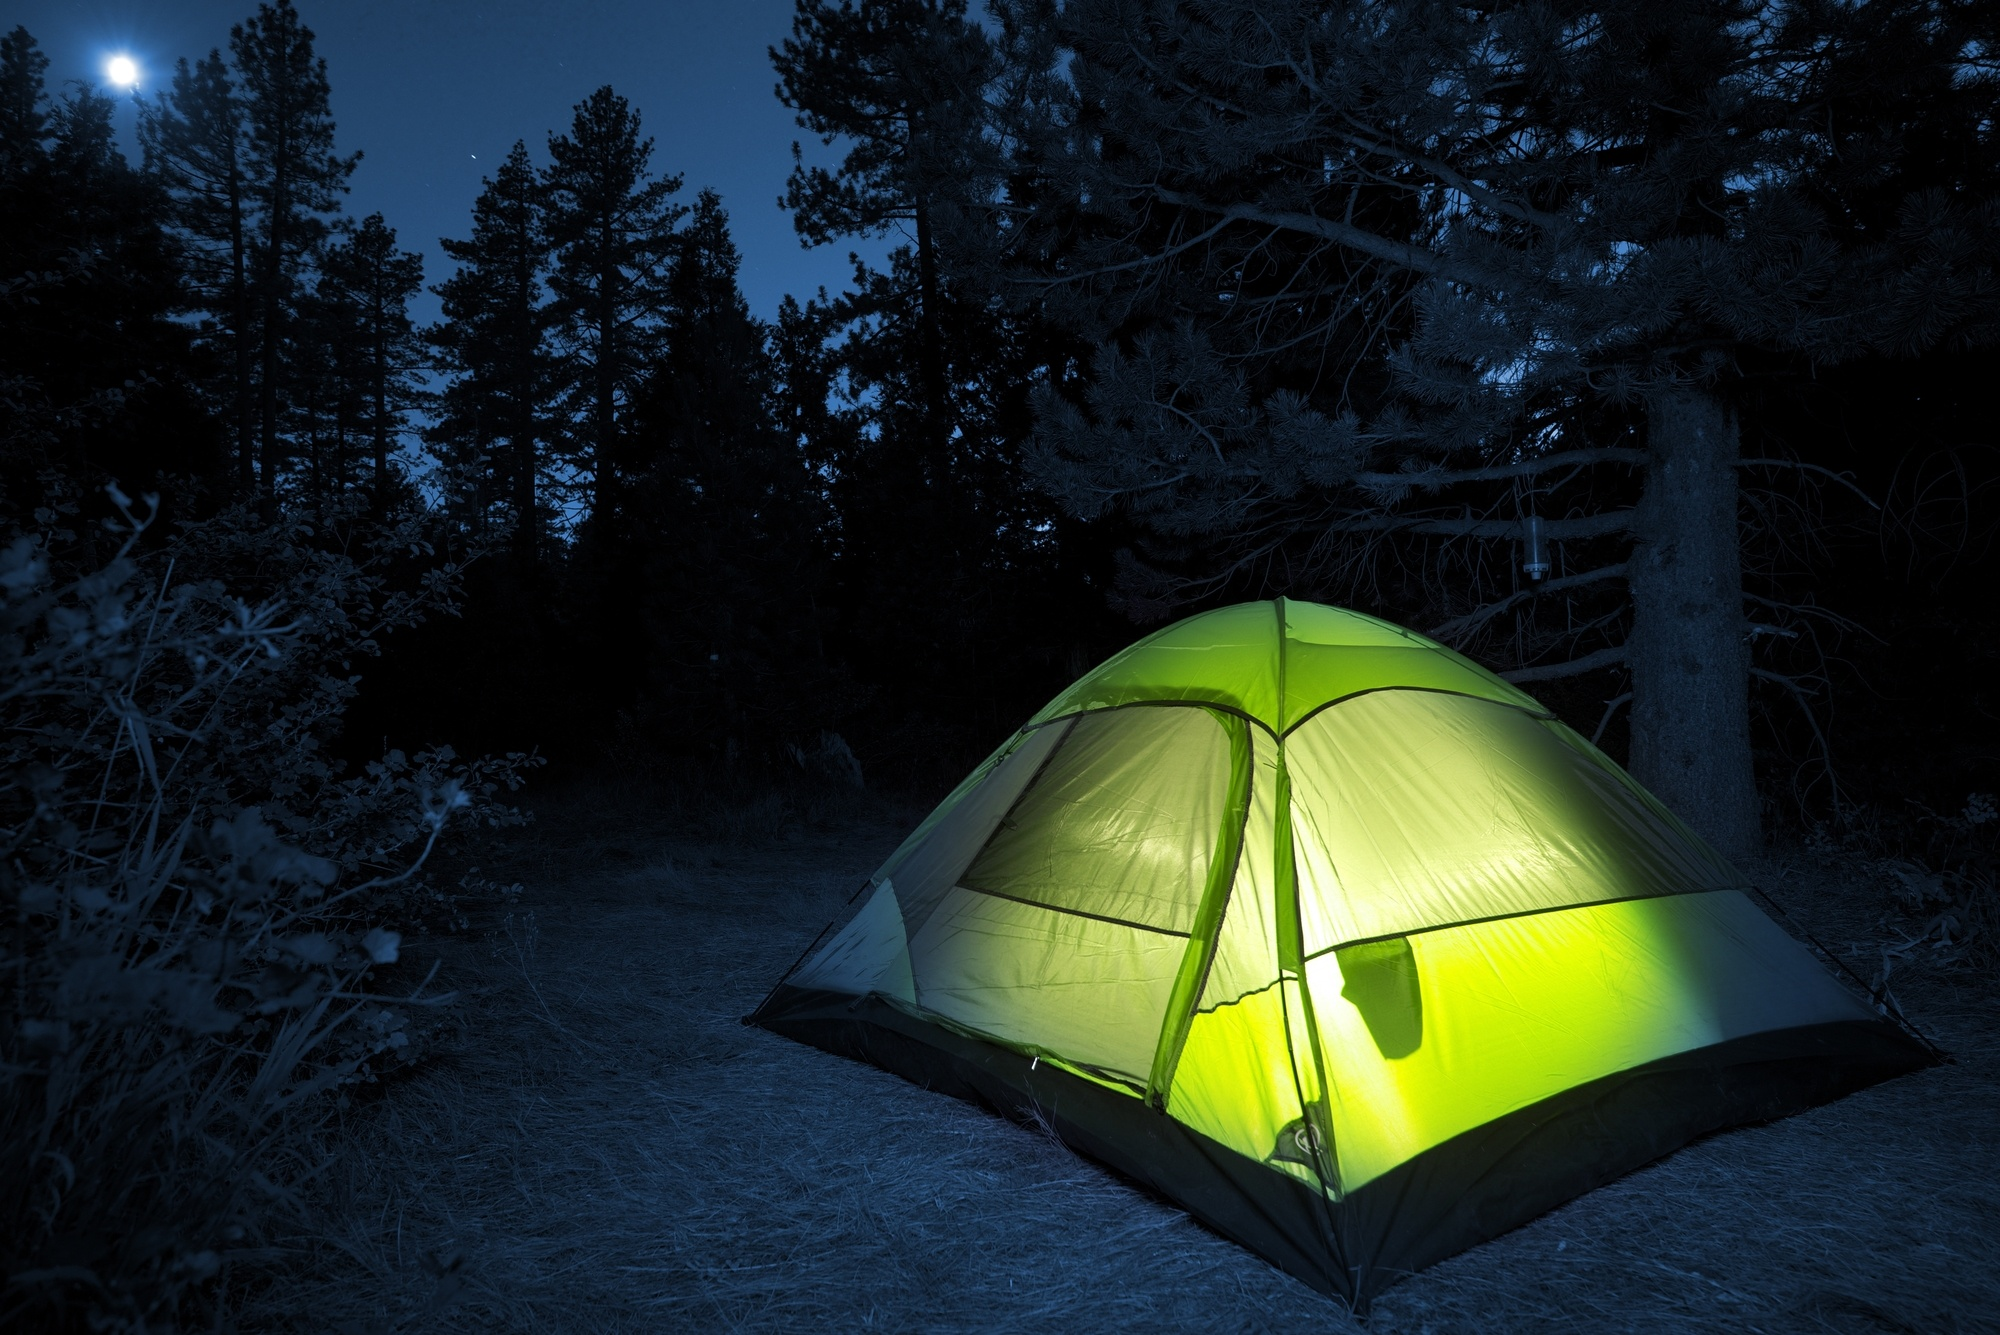 Eureka Tents Review: Small, Mid-Size, and Large Eureka Tents